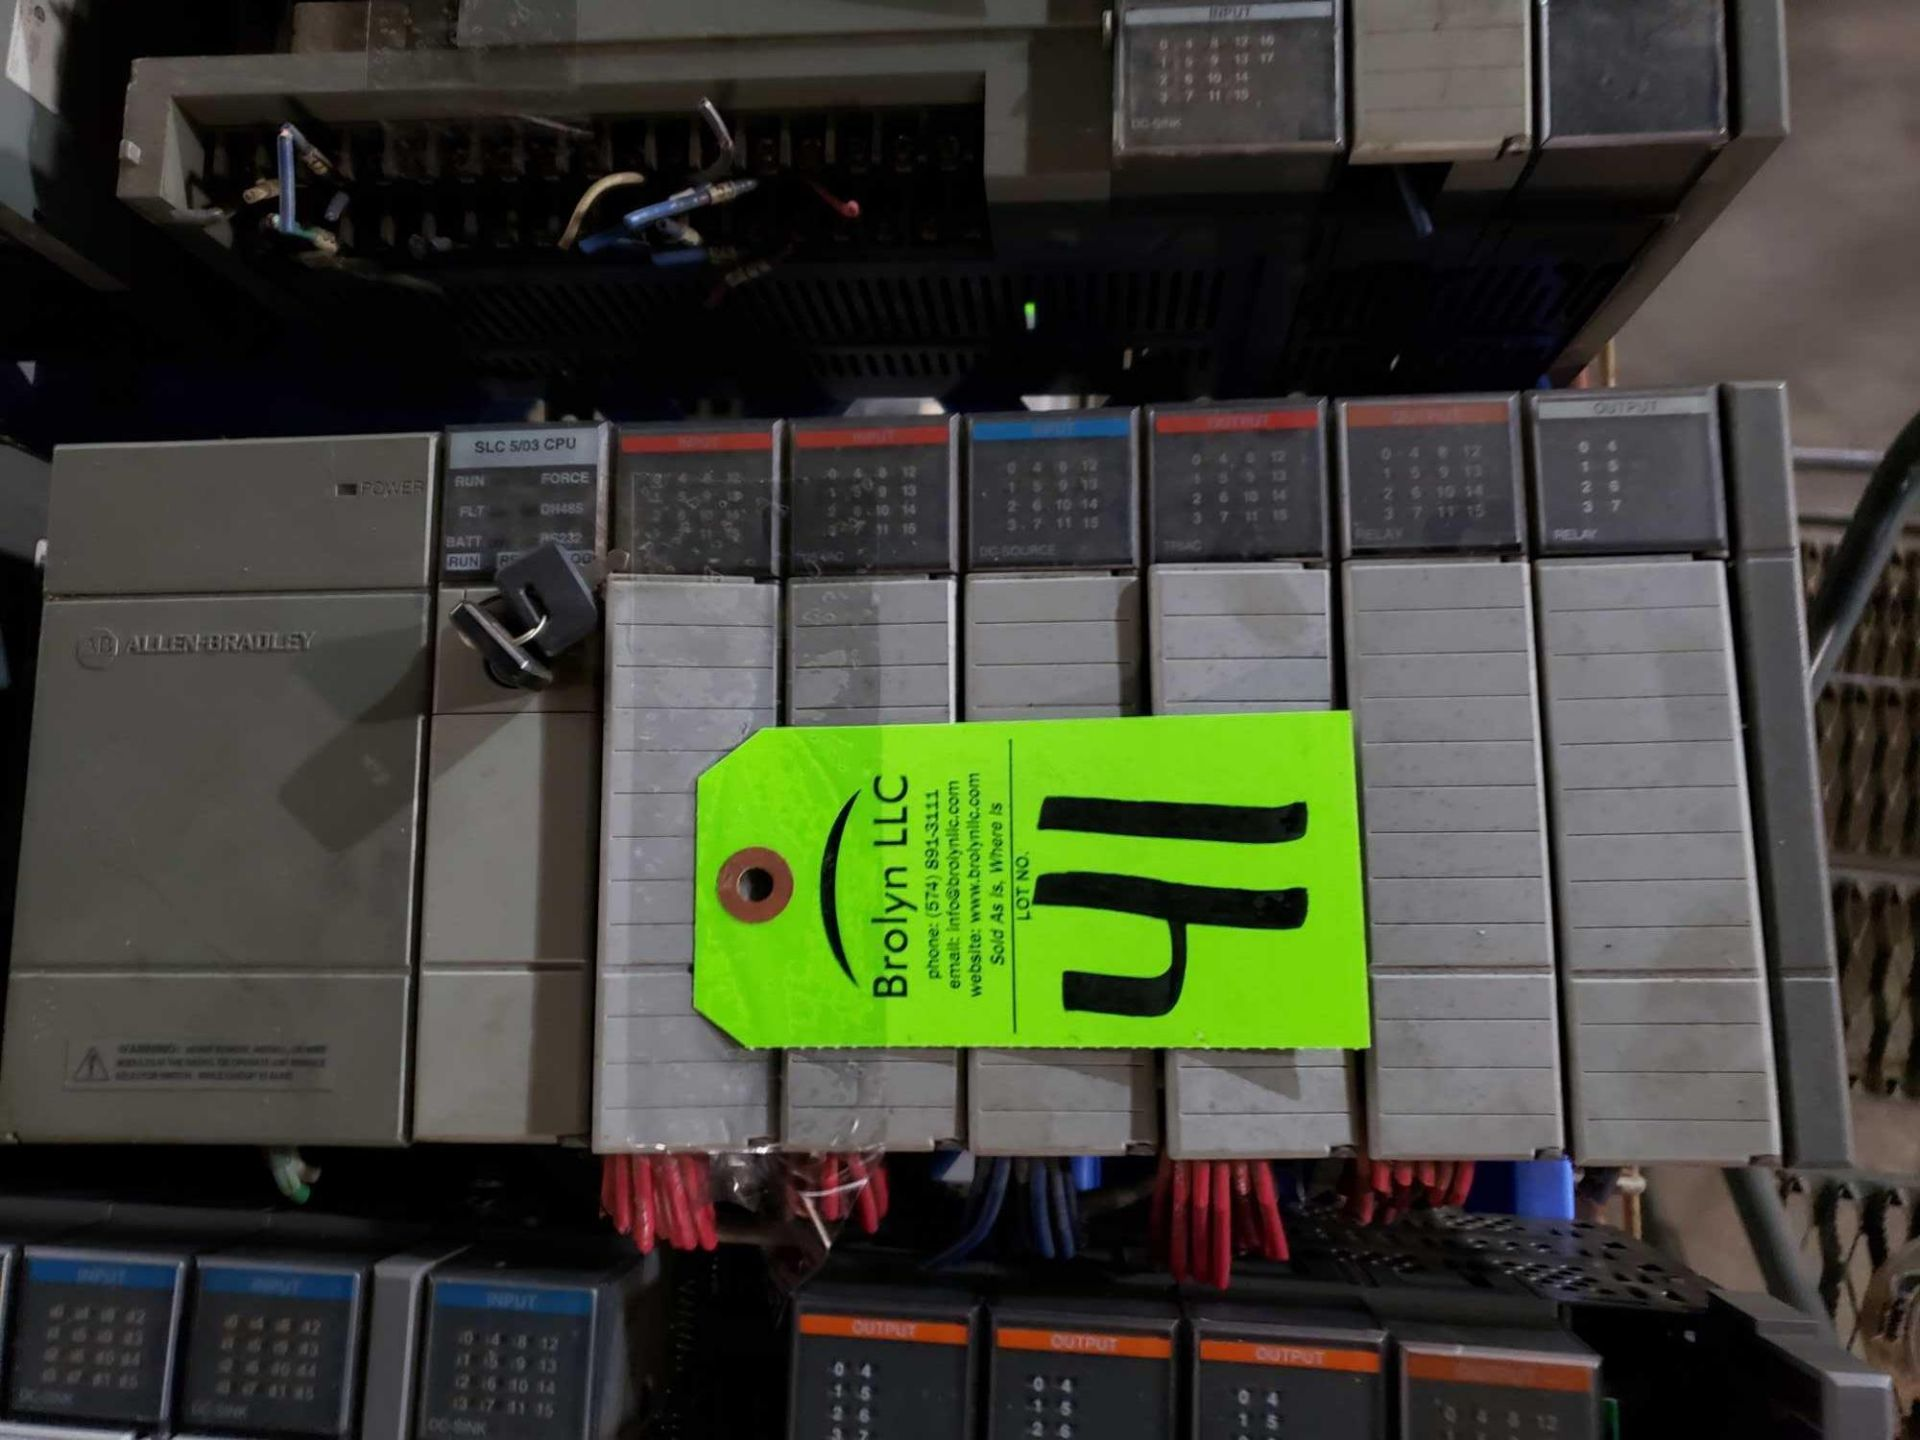 Lot 41 - Allen Bradley SLC500 rack as pictured. Includes SCL 5/03 CPU.